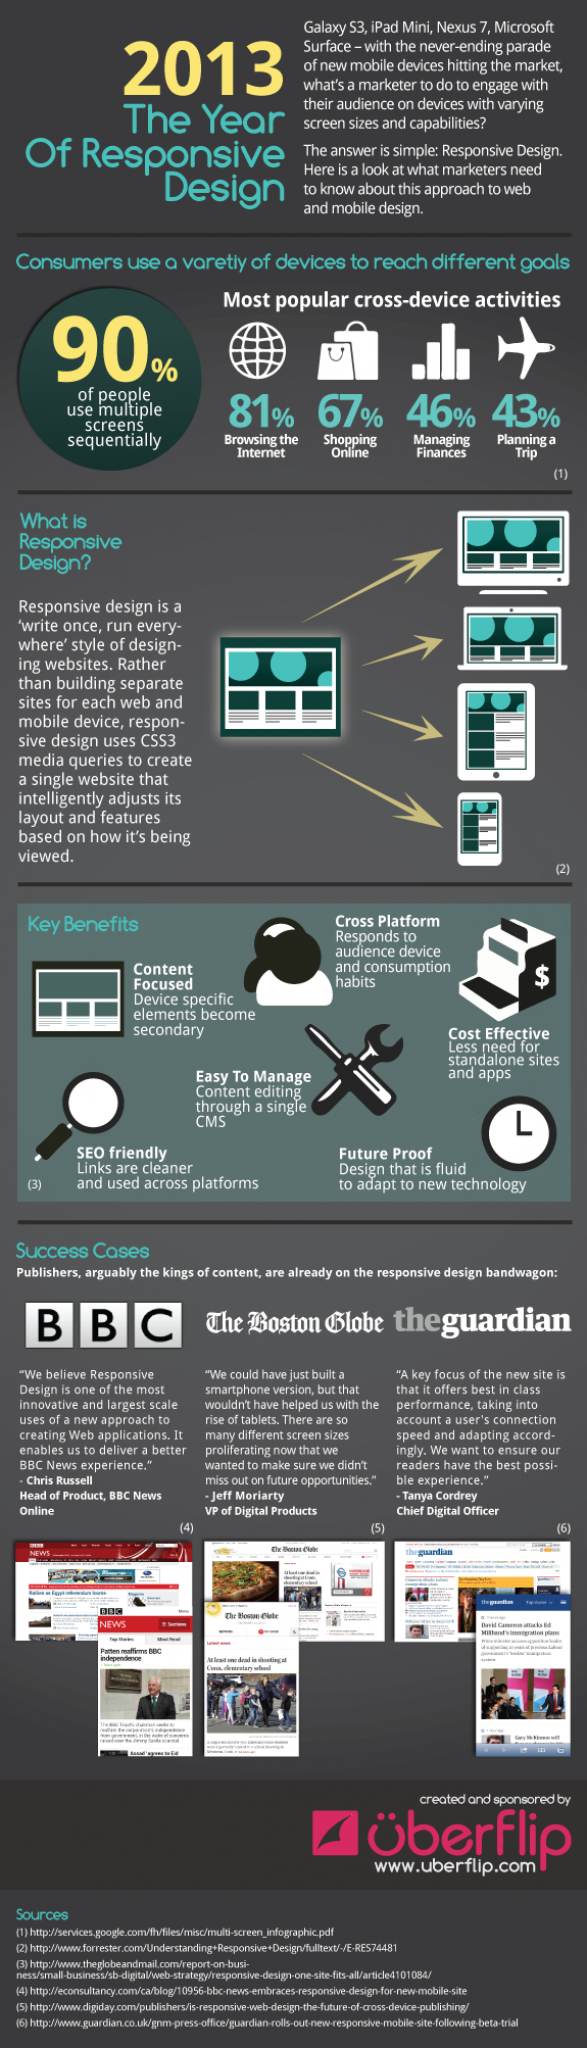 INFOGRAPHIC: 2013 The Year of Responsive Design